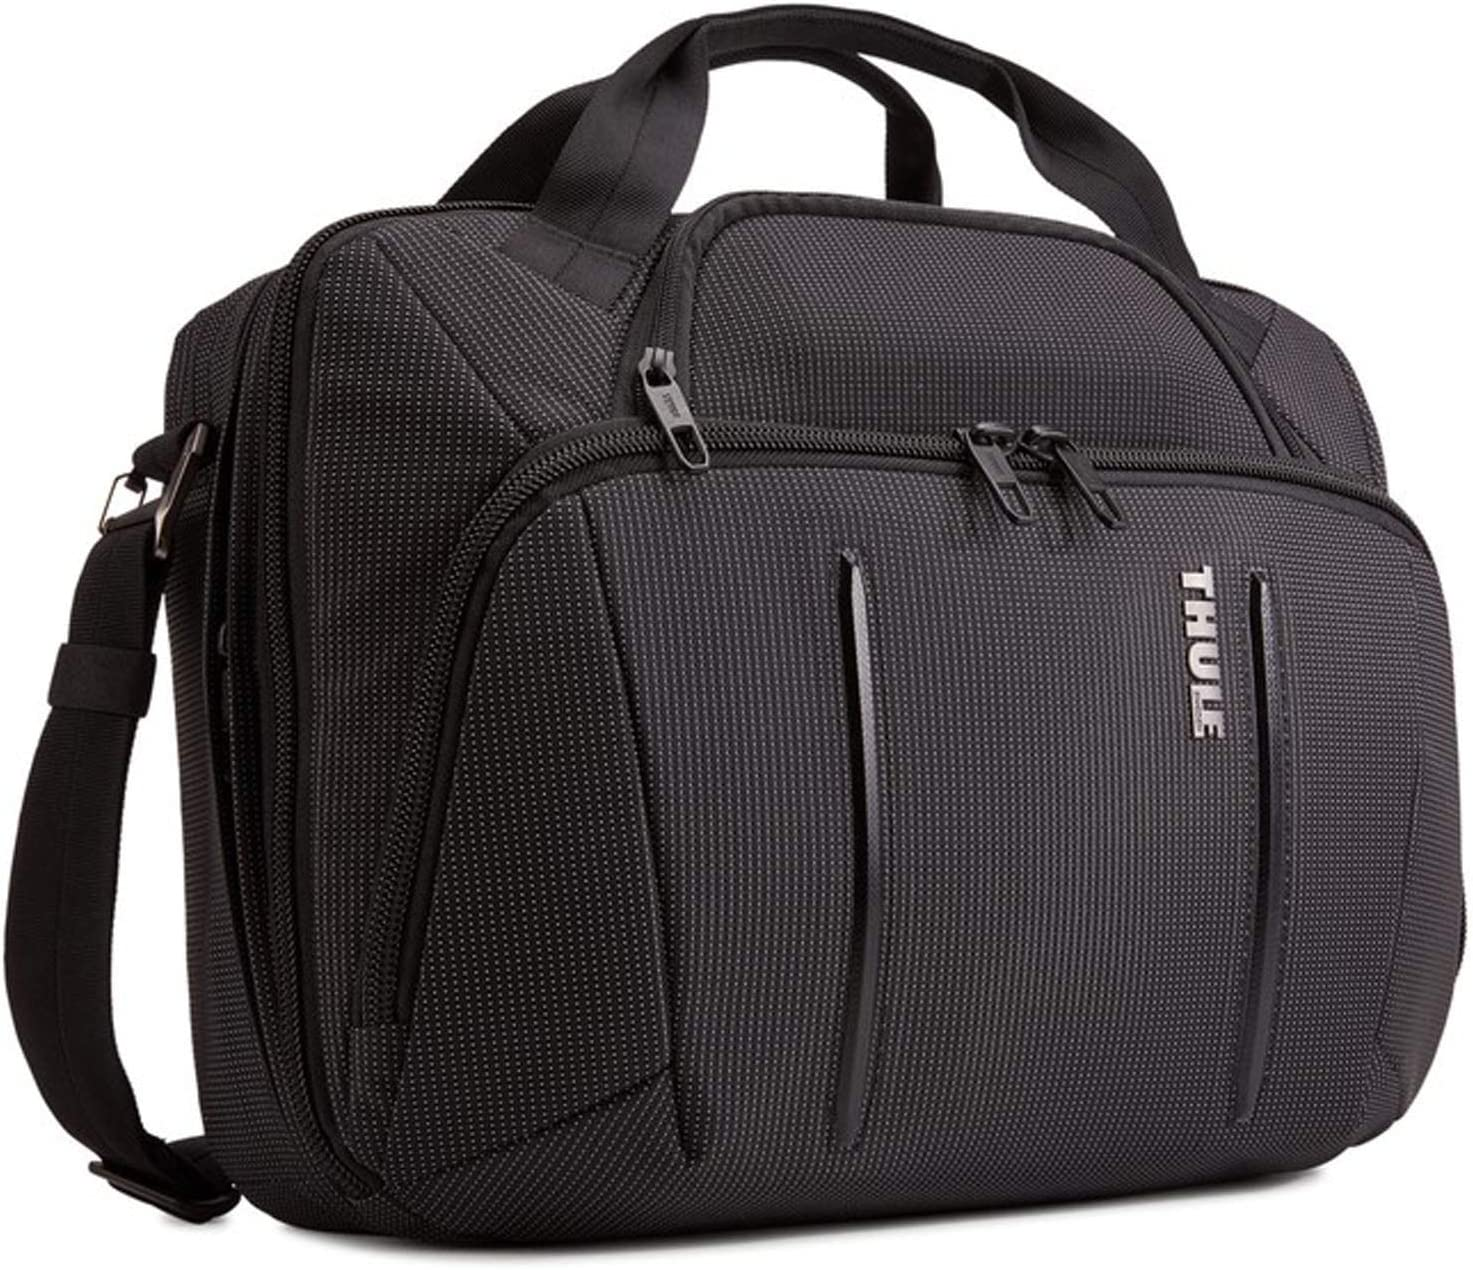 "Thule Crossover 2 Laptop Bag 15.6"", Black, 17.3 x 5.9 x 12.6 in"